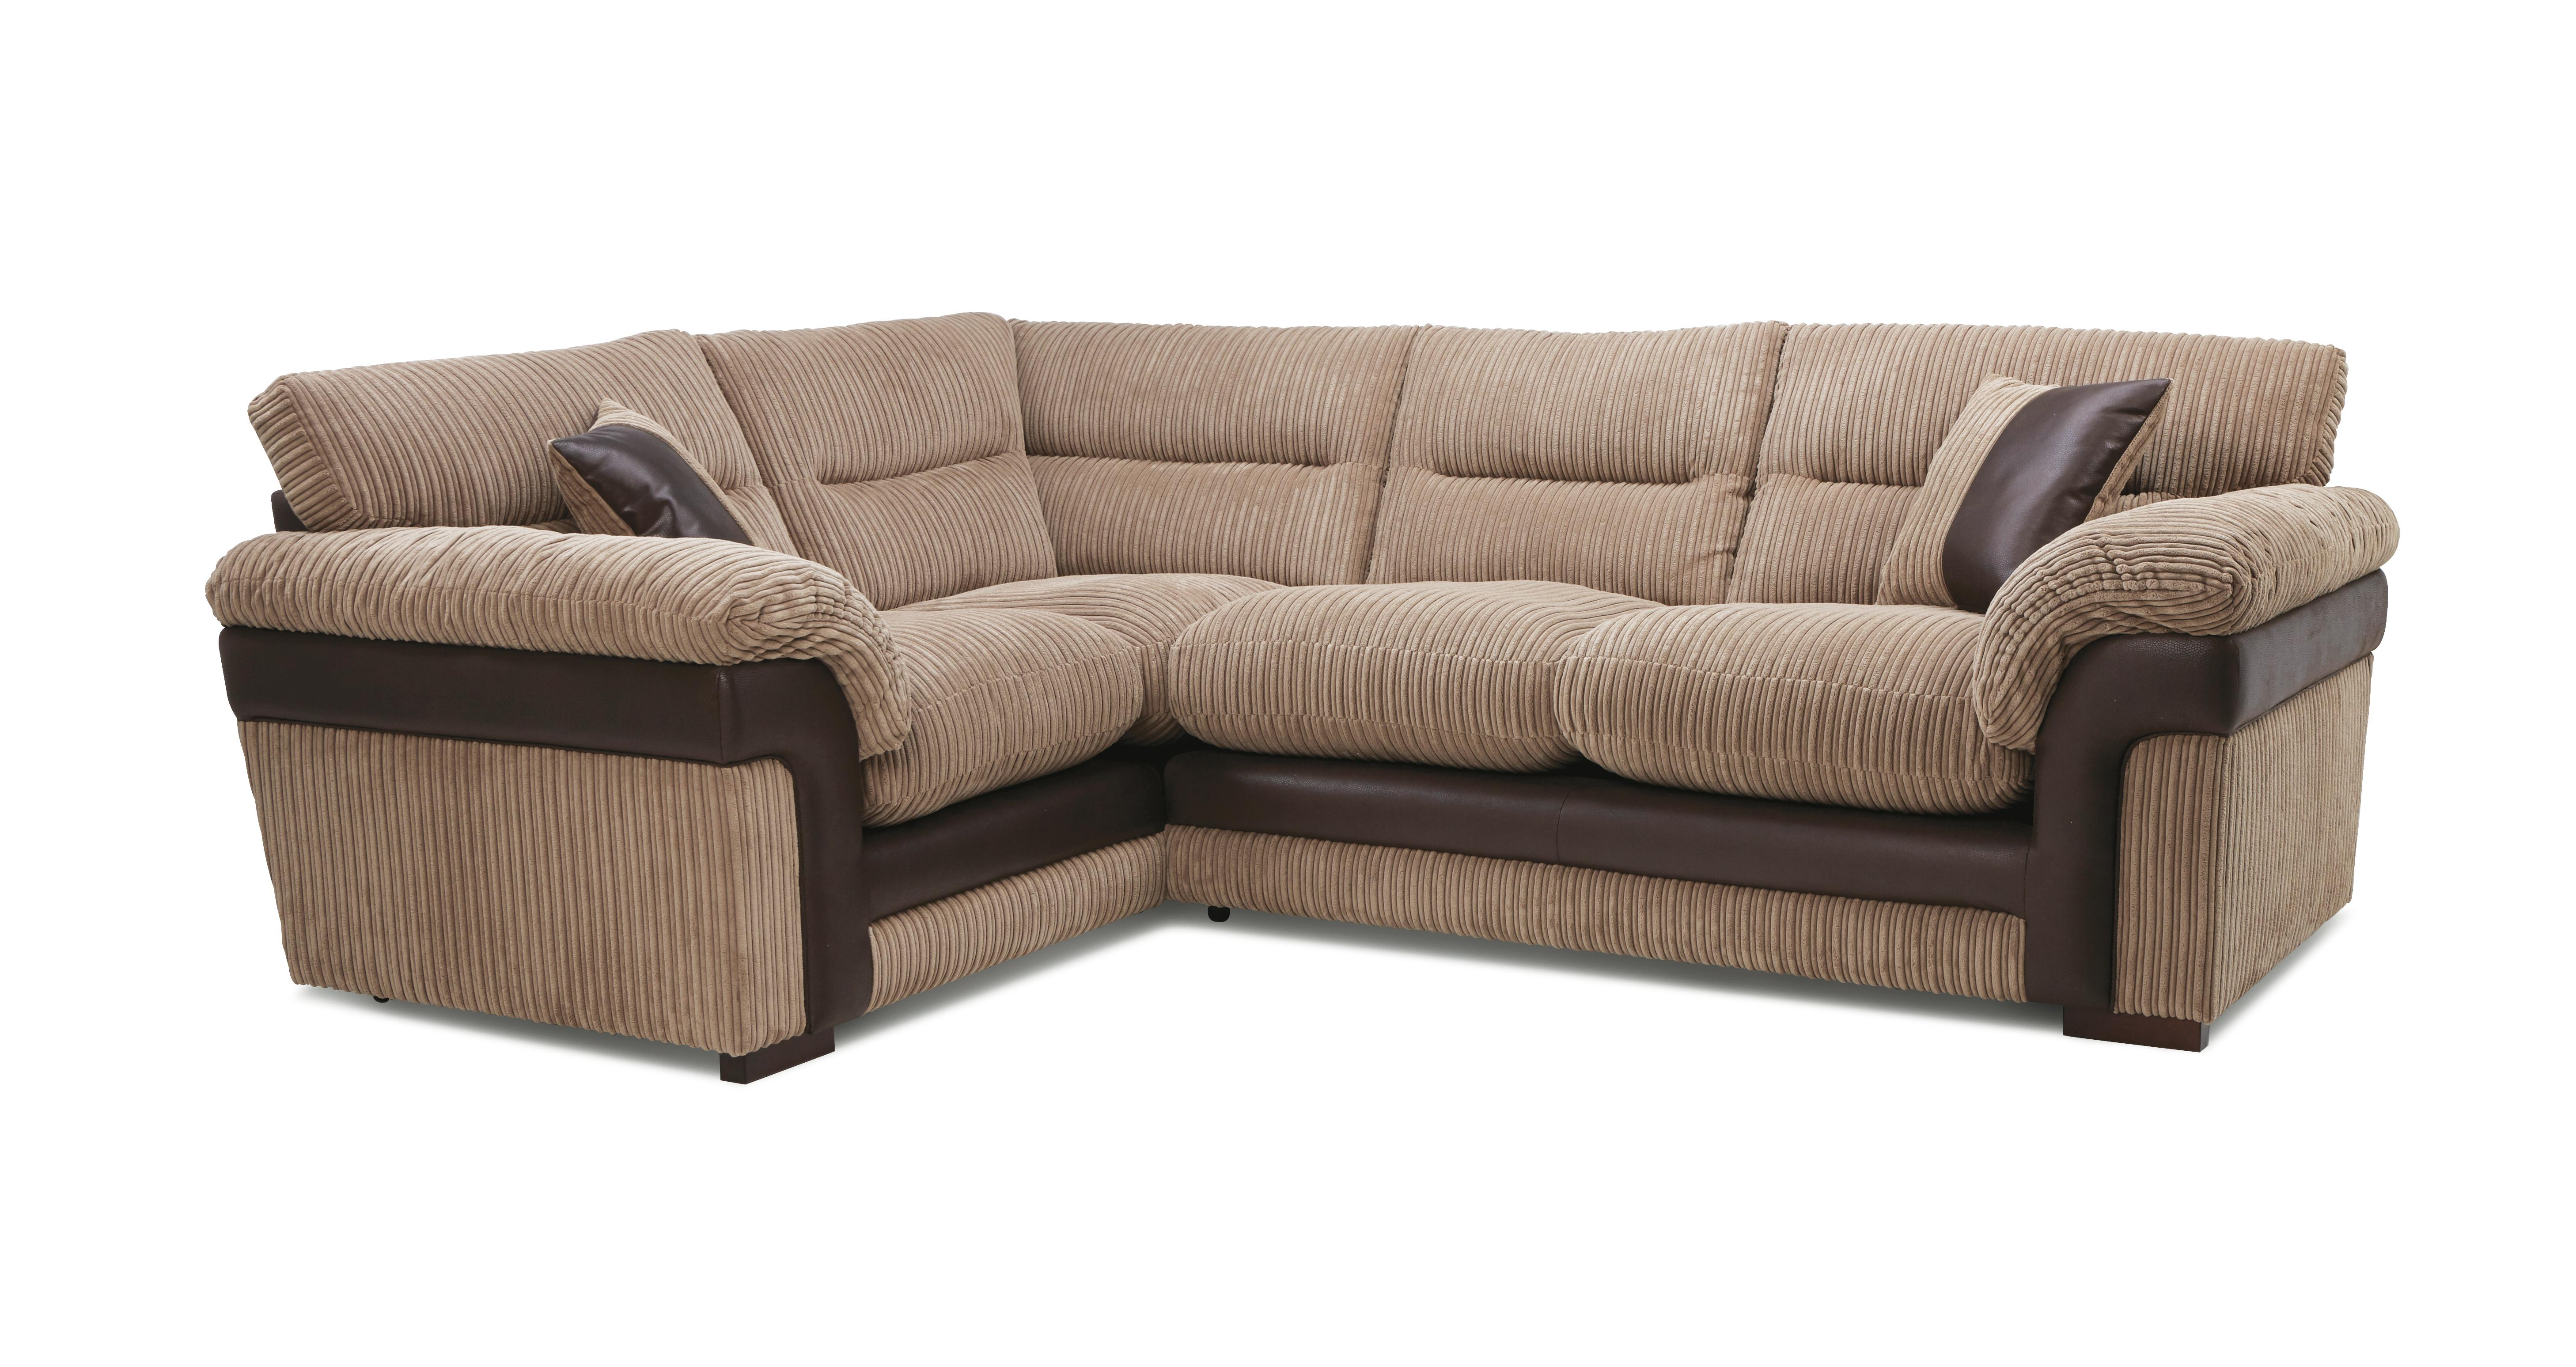 Saxon right hand facing arm 2 piece corner sofa samson dfs for Sofa 0 finance